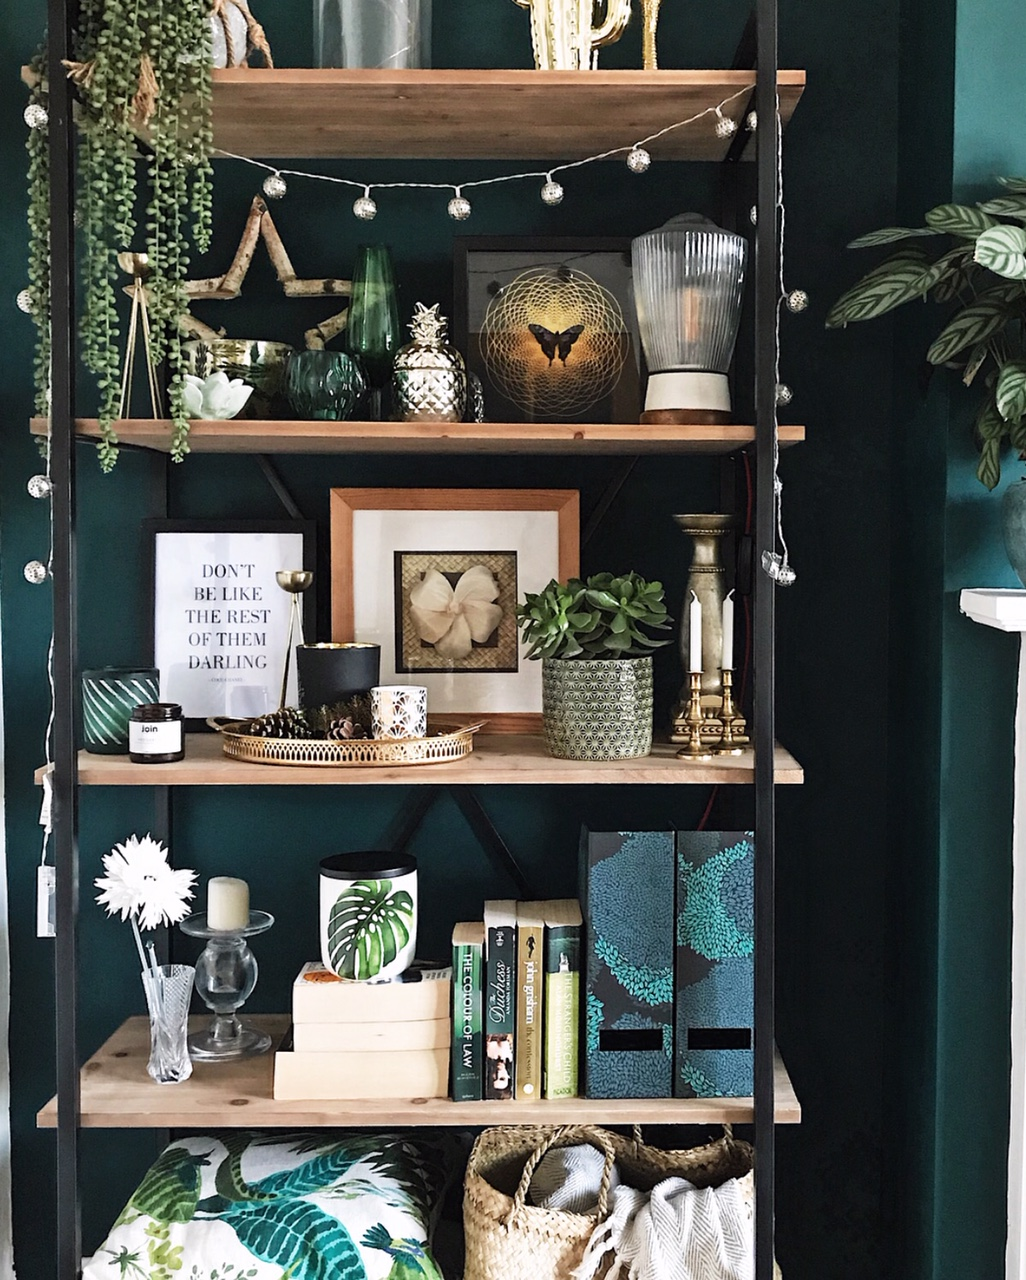 I love how the industrial shelves and gold details look against this dark green wall